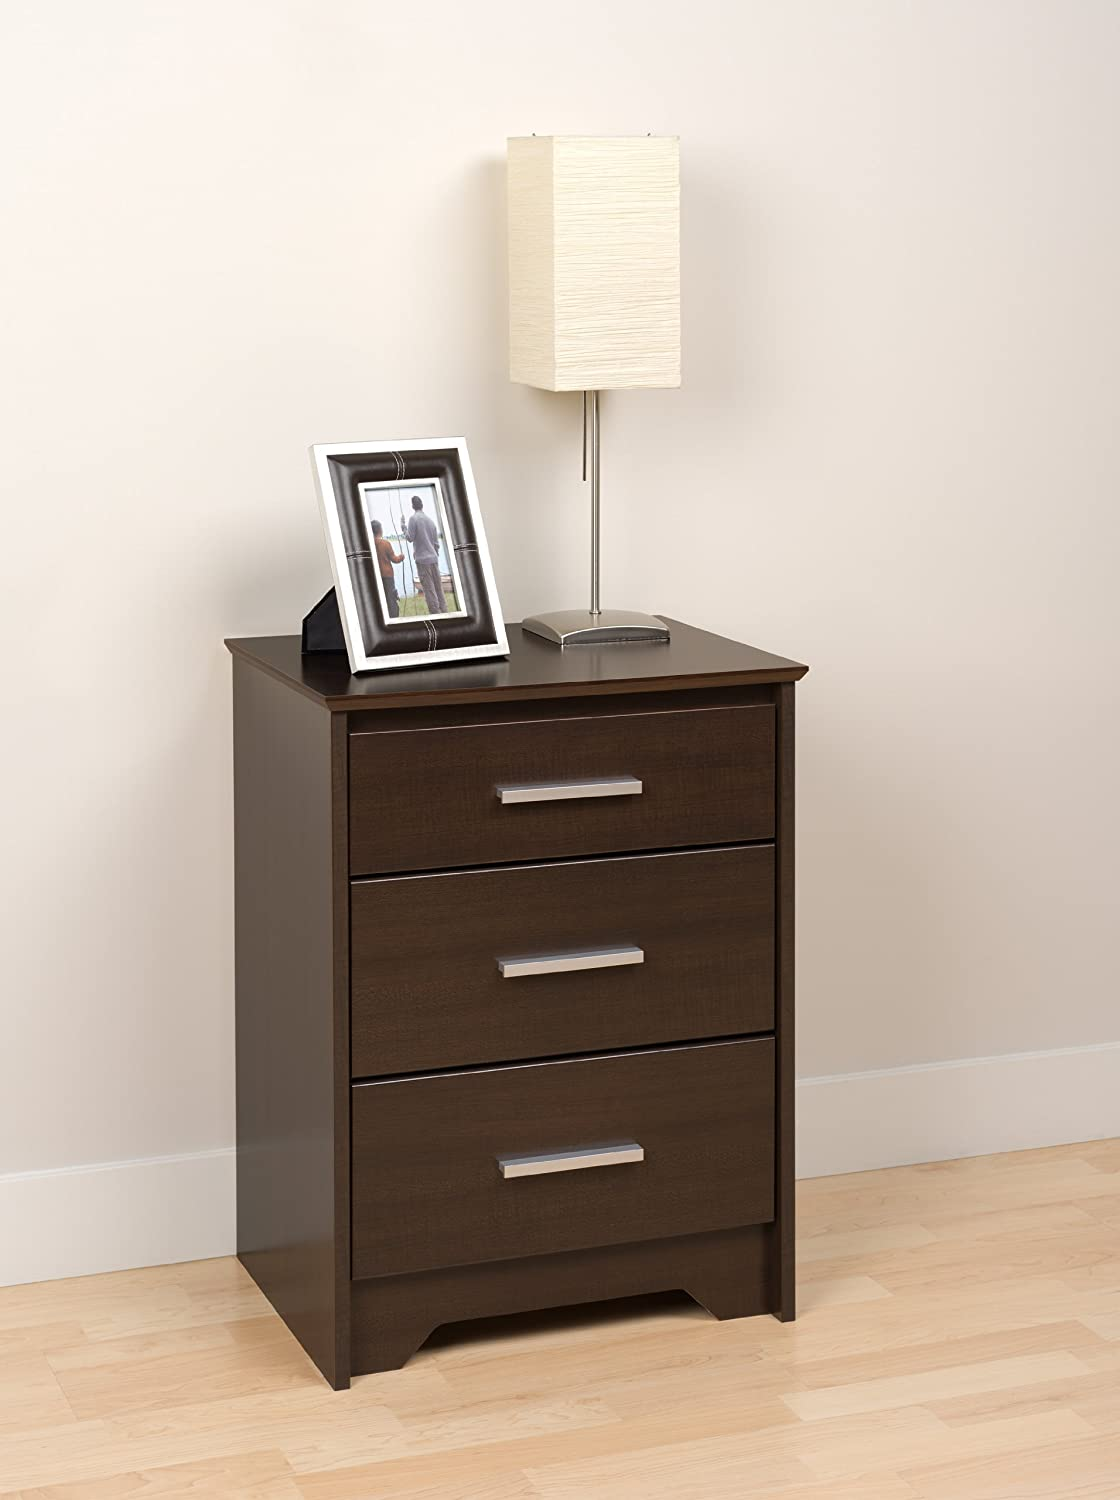 Prepac BCH-2027 Coal Harbor 3-Drawer Tall Nightstand, Black Prepac Manufacturing